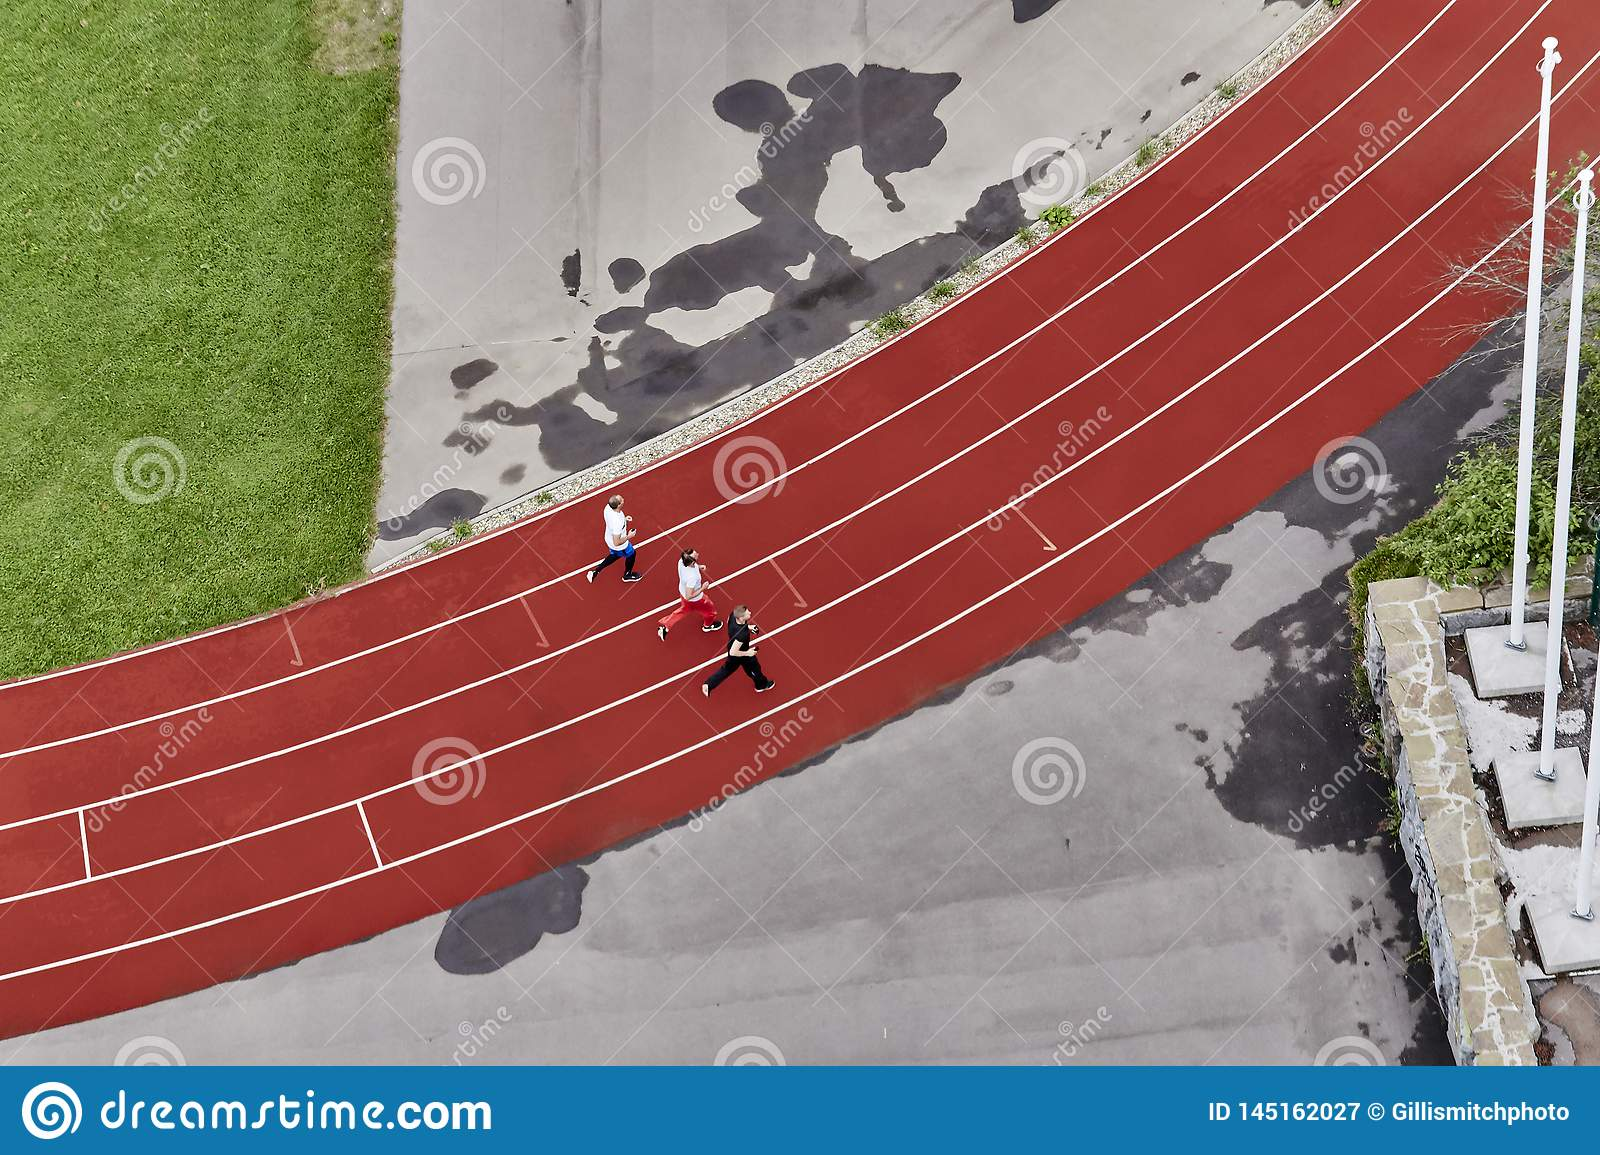 Three runners on a treadmill, top view